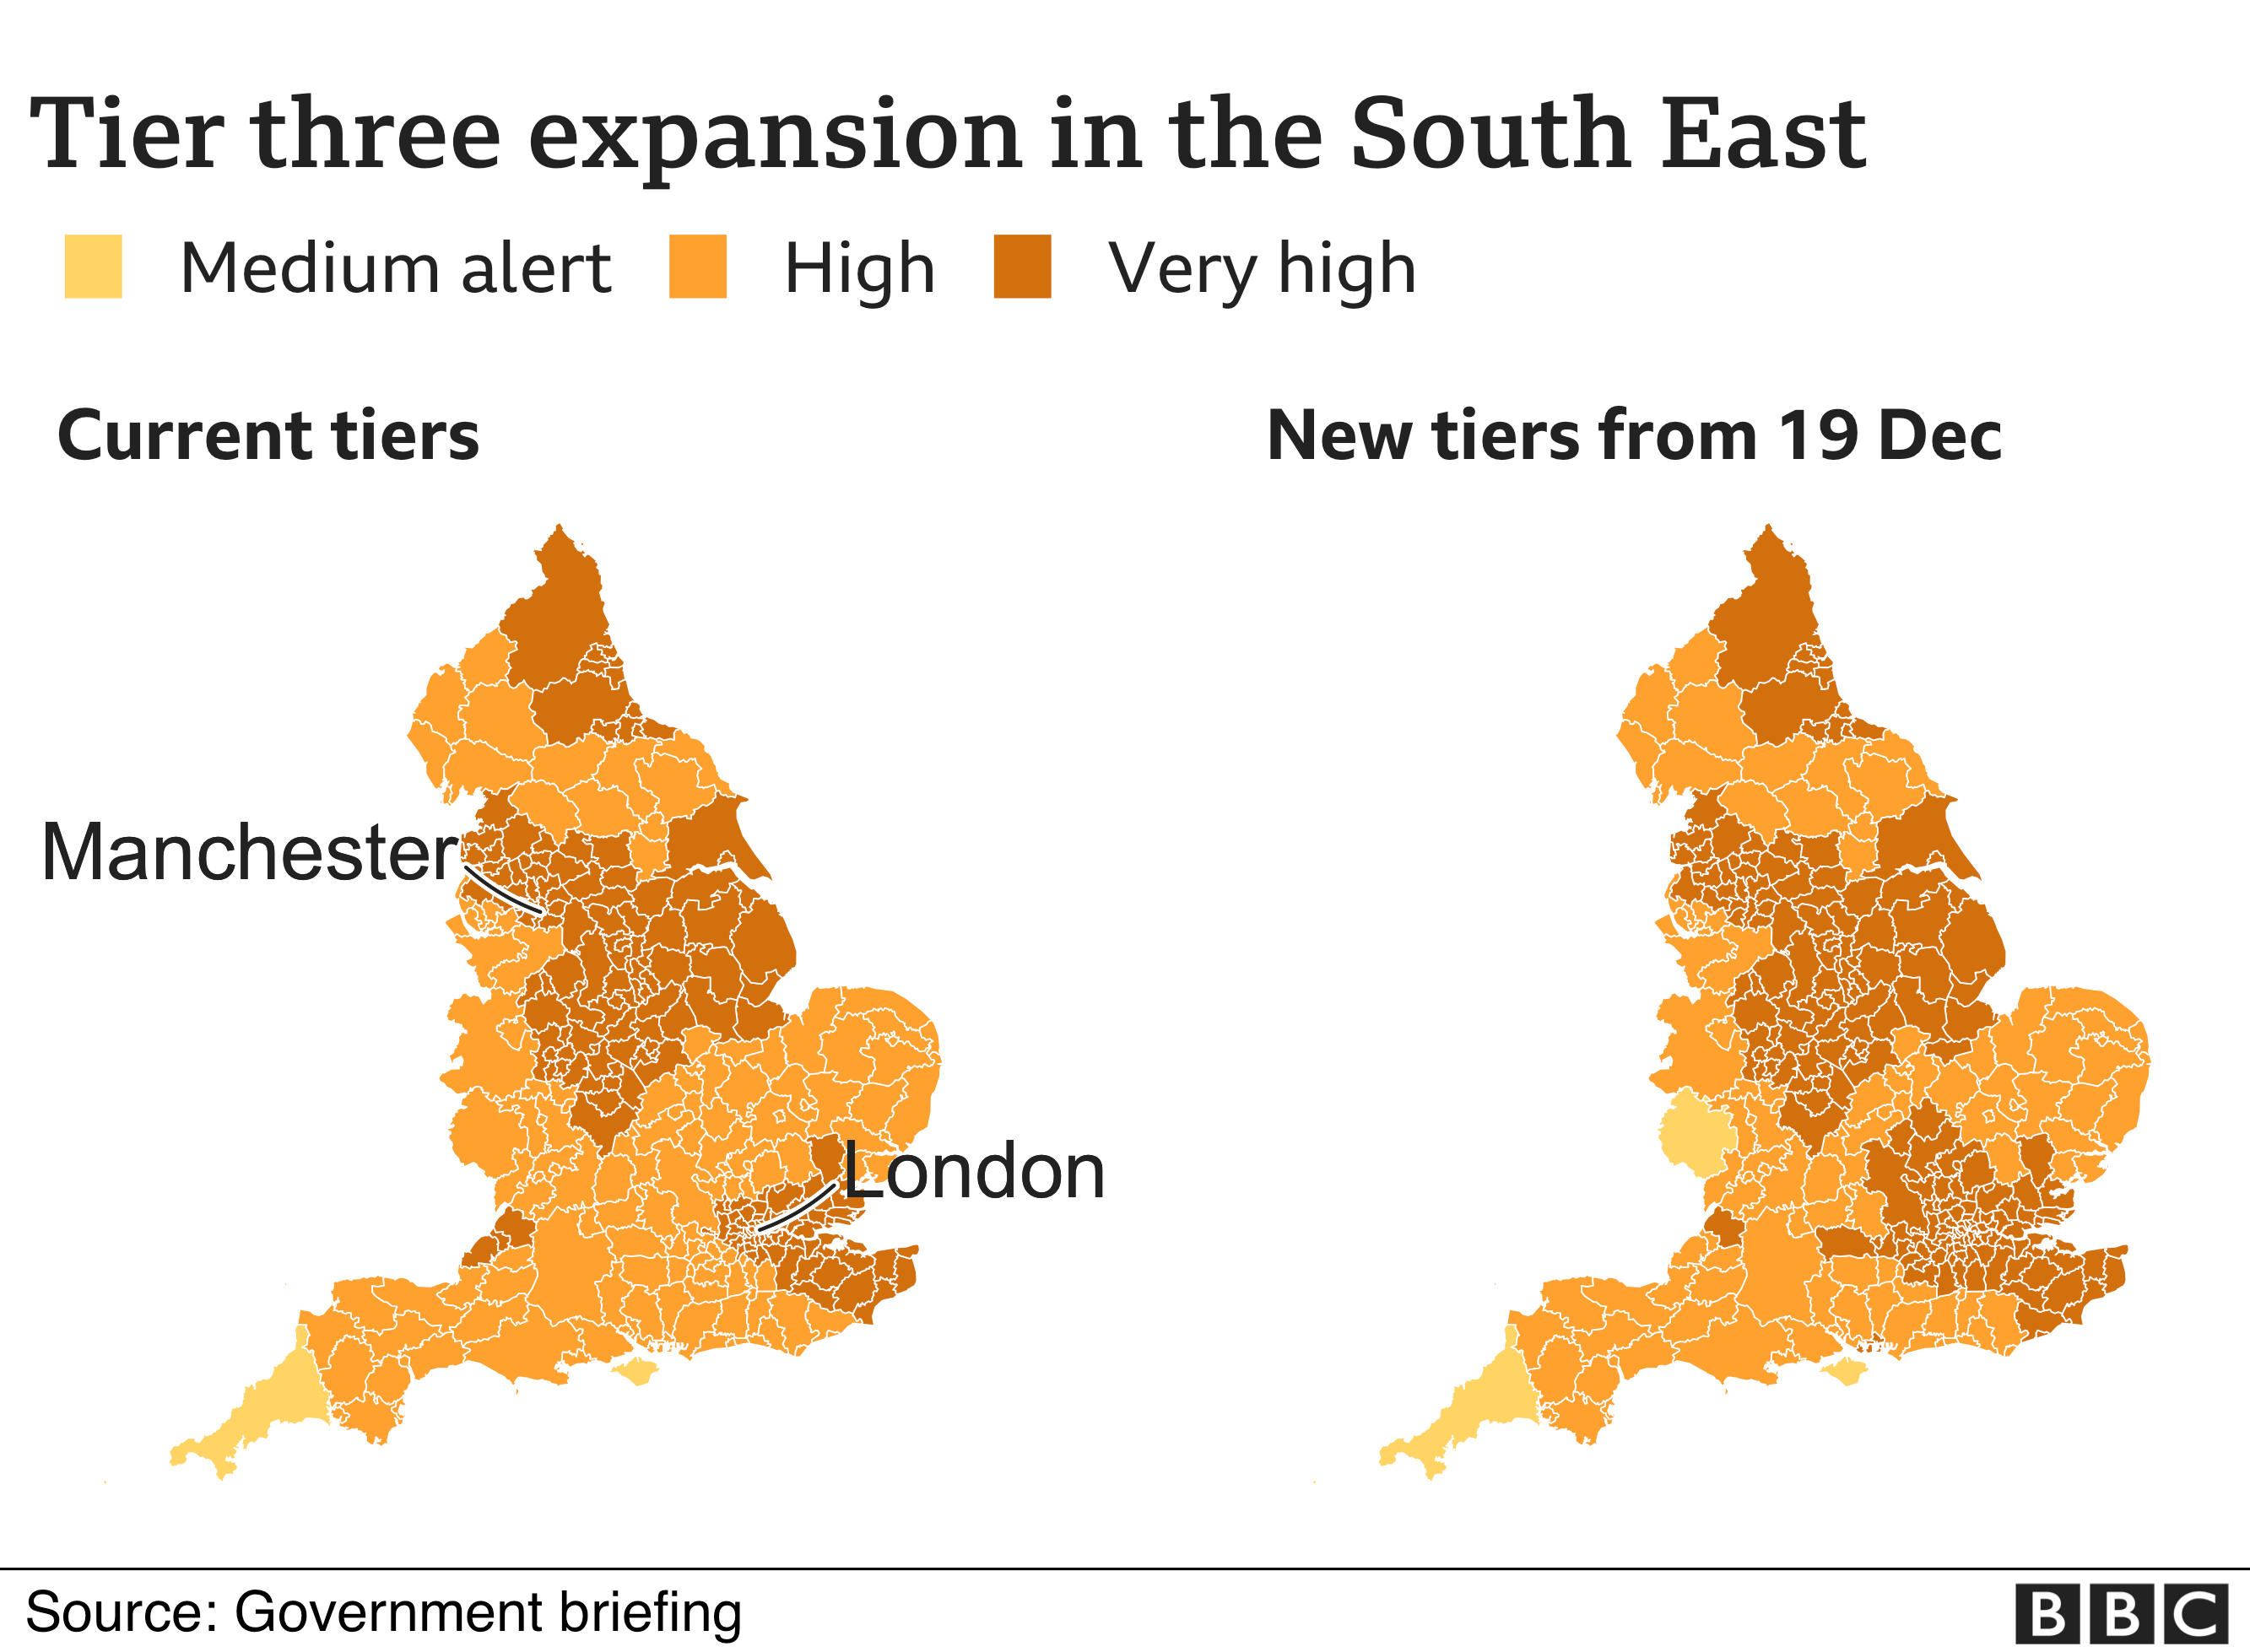 Tier three expansion in the South East